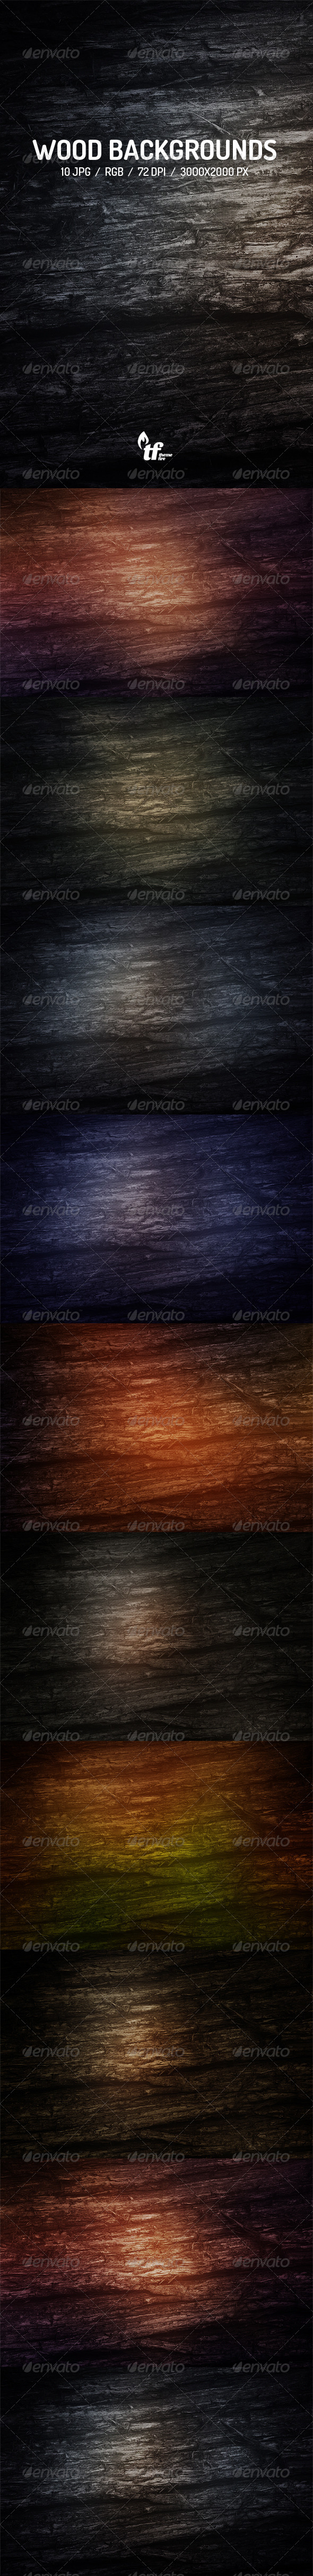 GraphicRiver Wood Backgrounds 7549077